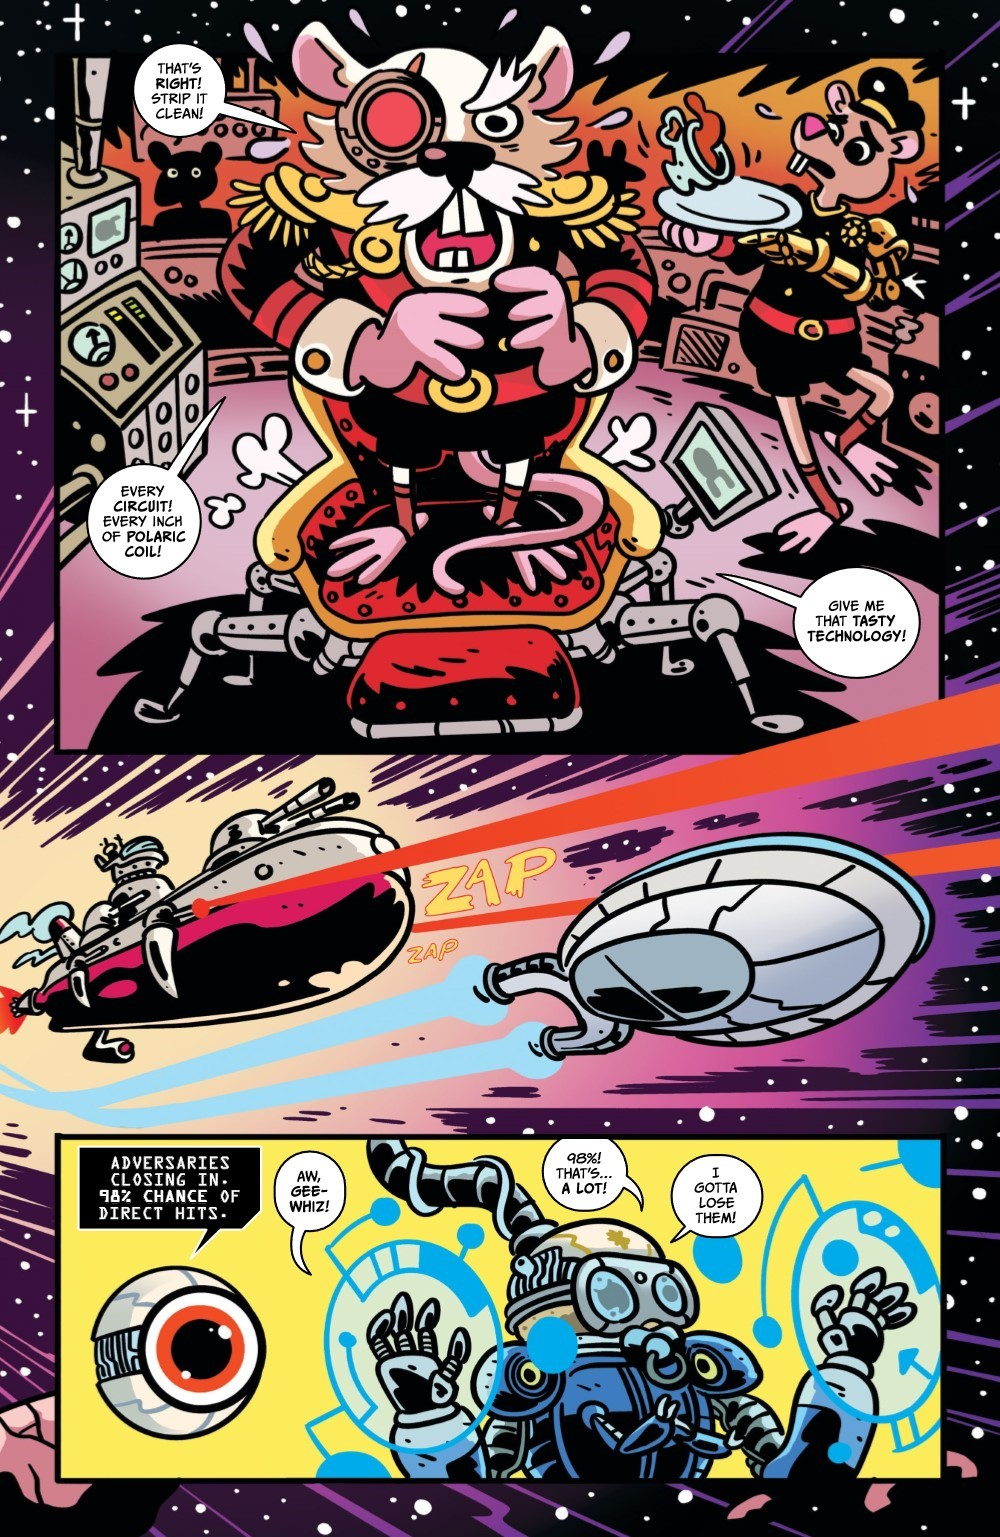 ORCSINSPACE-3-REFERENCE-06 ComicList Previews: ORCS IN SPACE #3